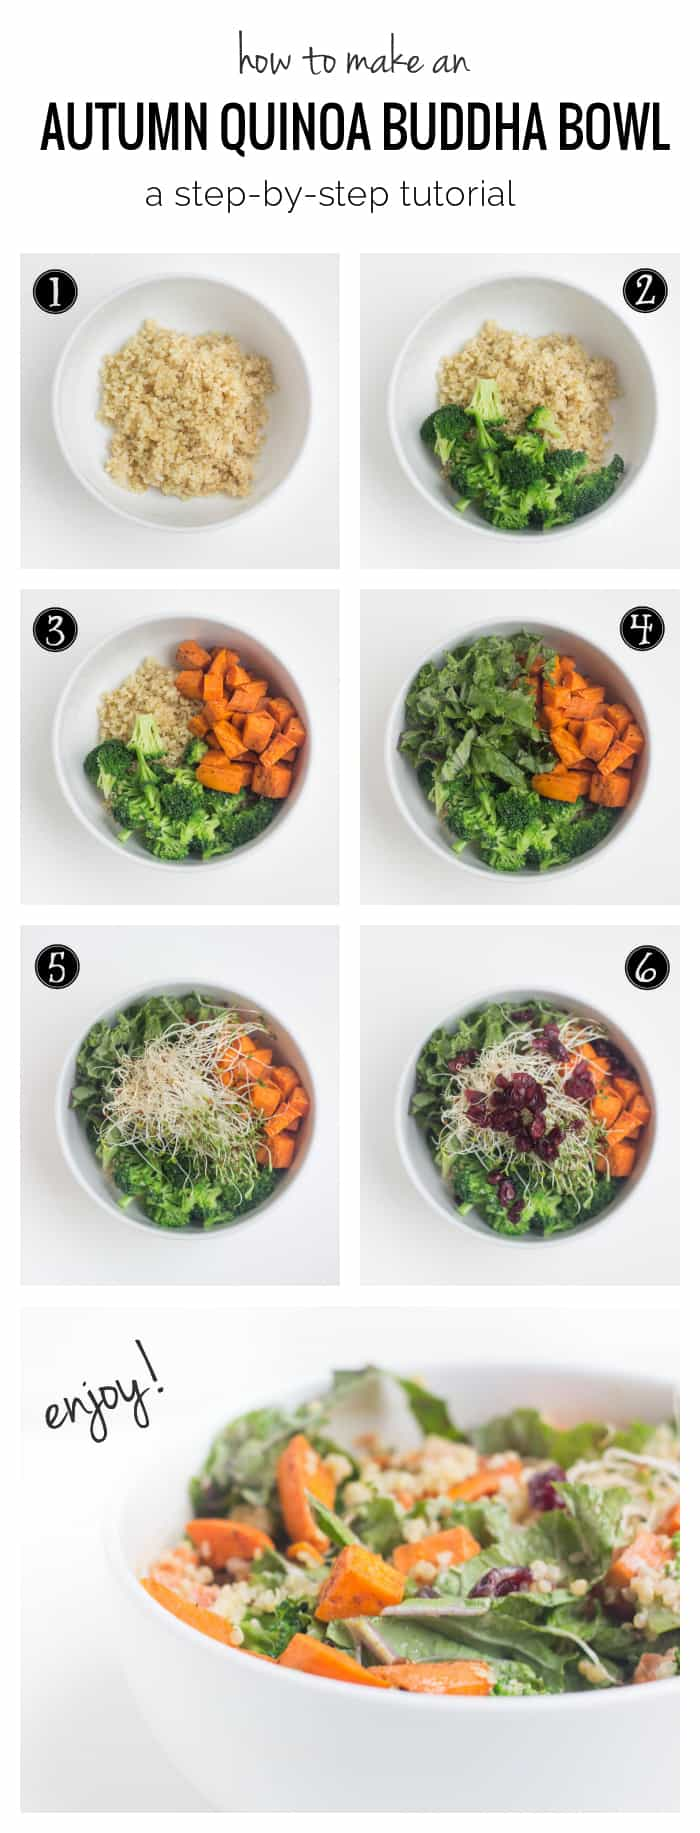 How to make an Autumn Quinoa Buddha Bowl - in 7 simple steps